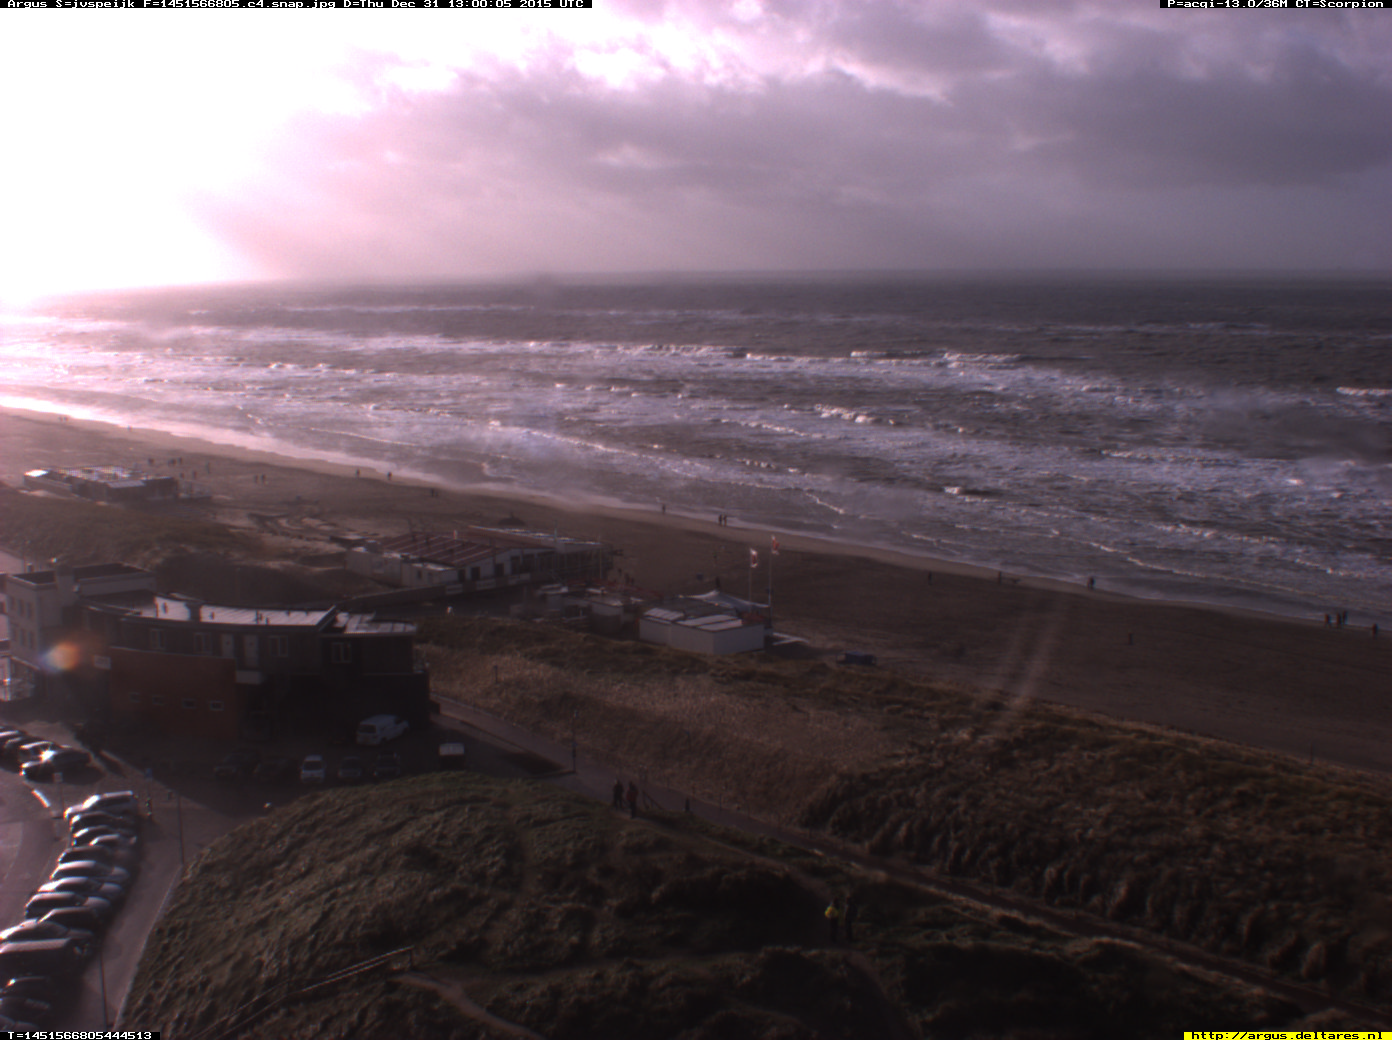 Wetter In Egmond Aan Zee Live Webcam Egmond Aan Zee Strandblick